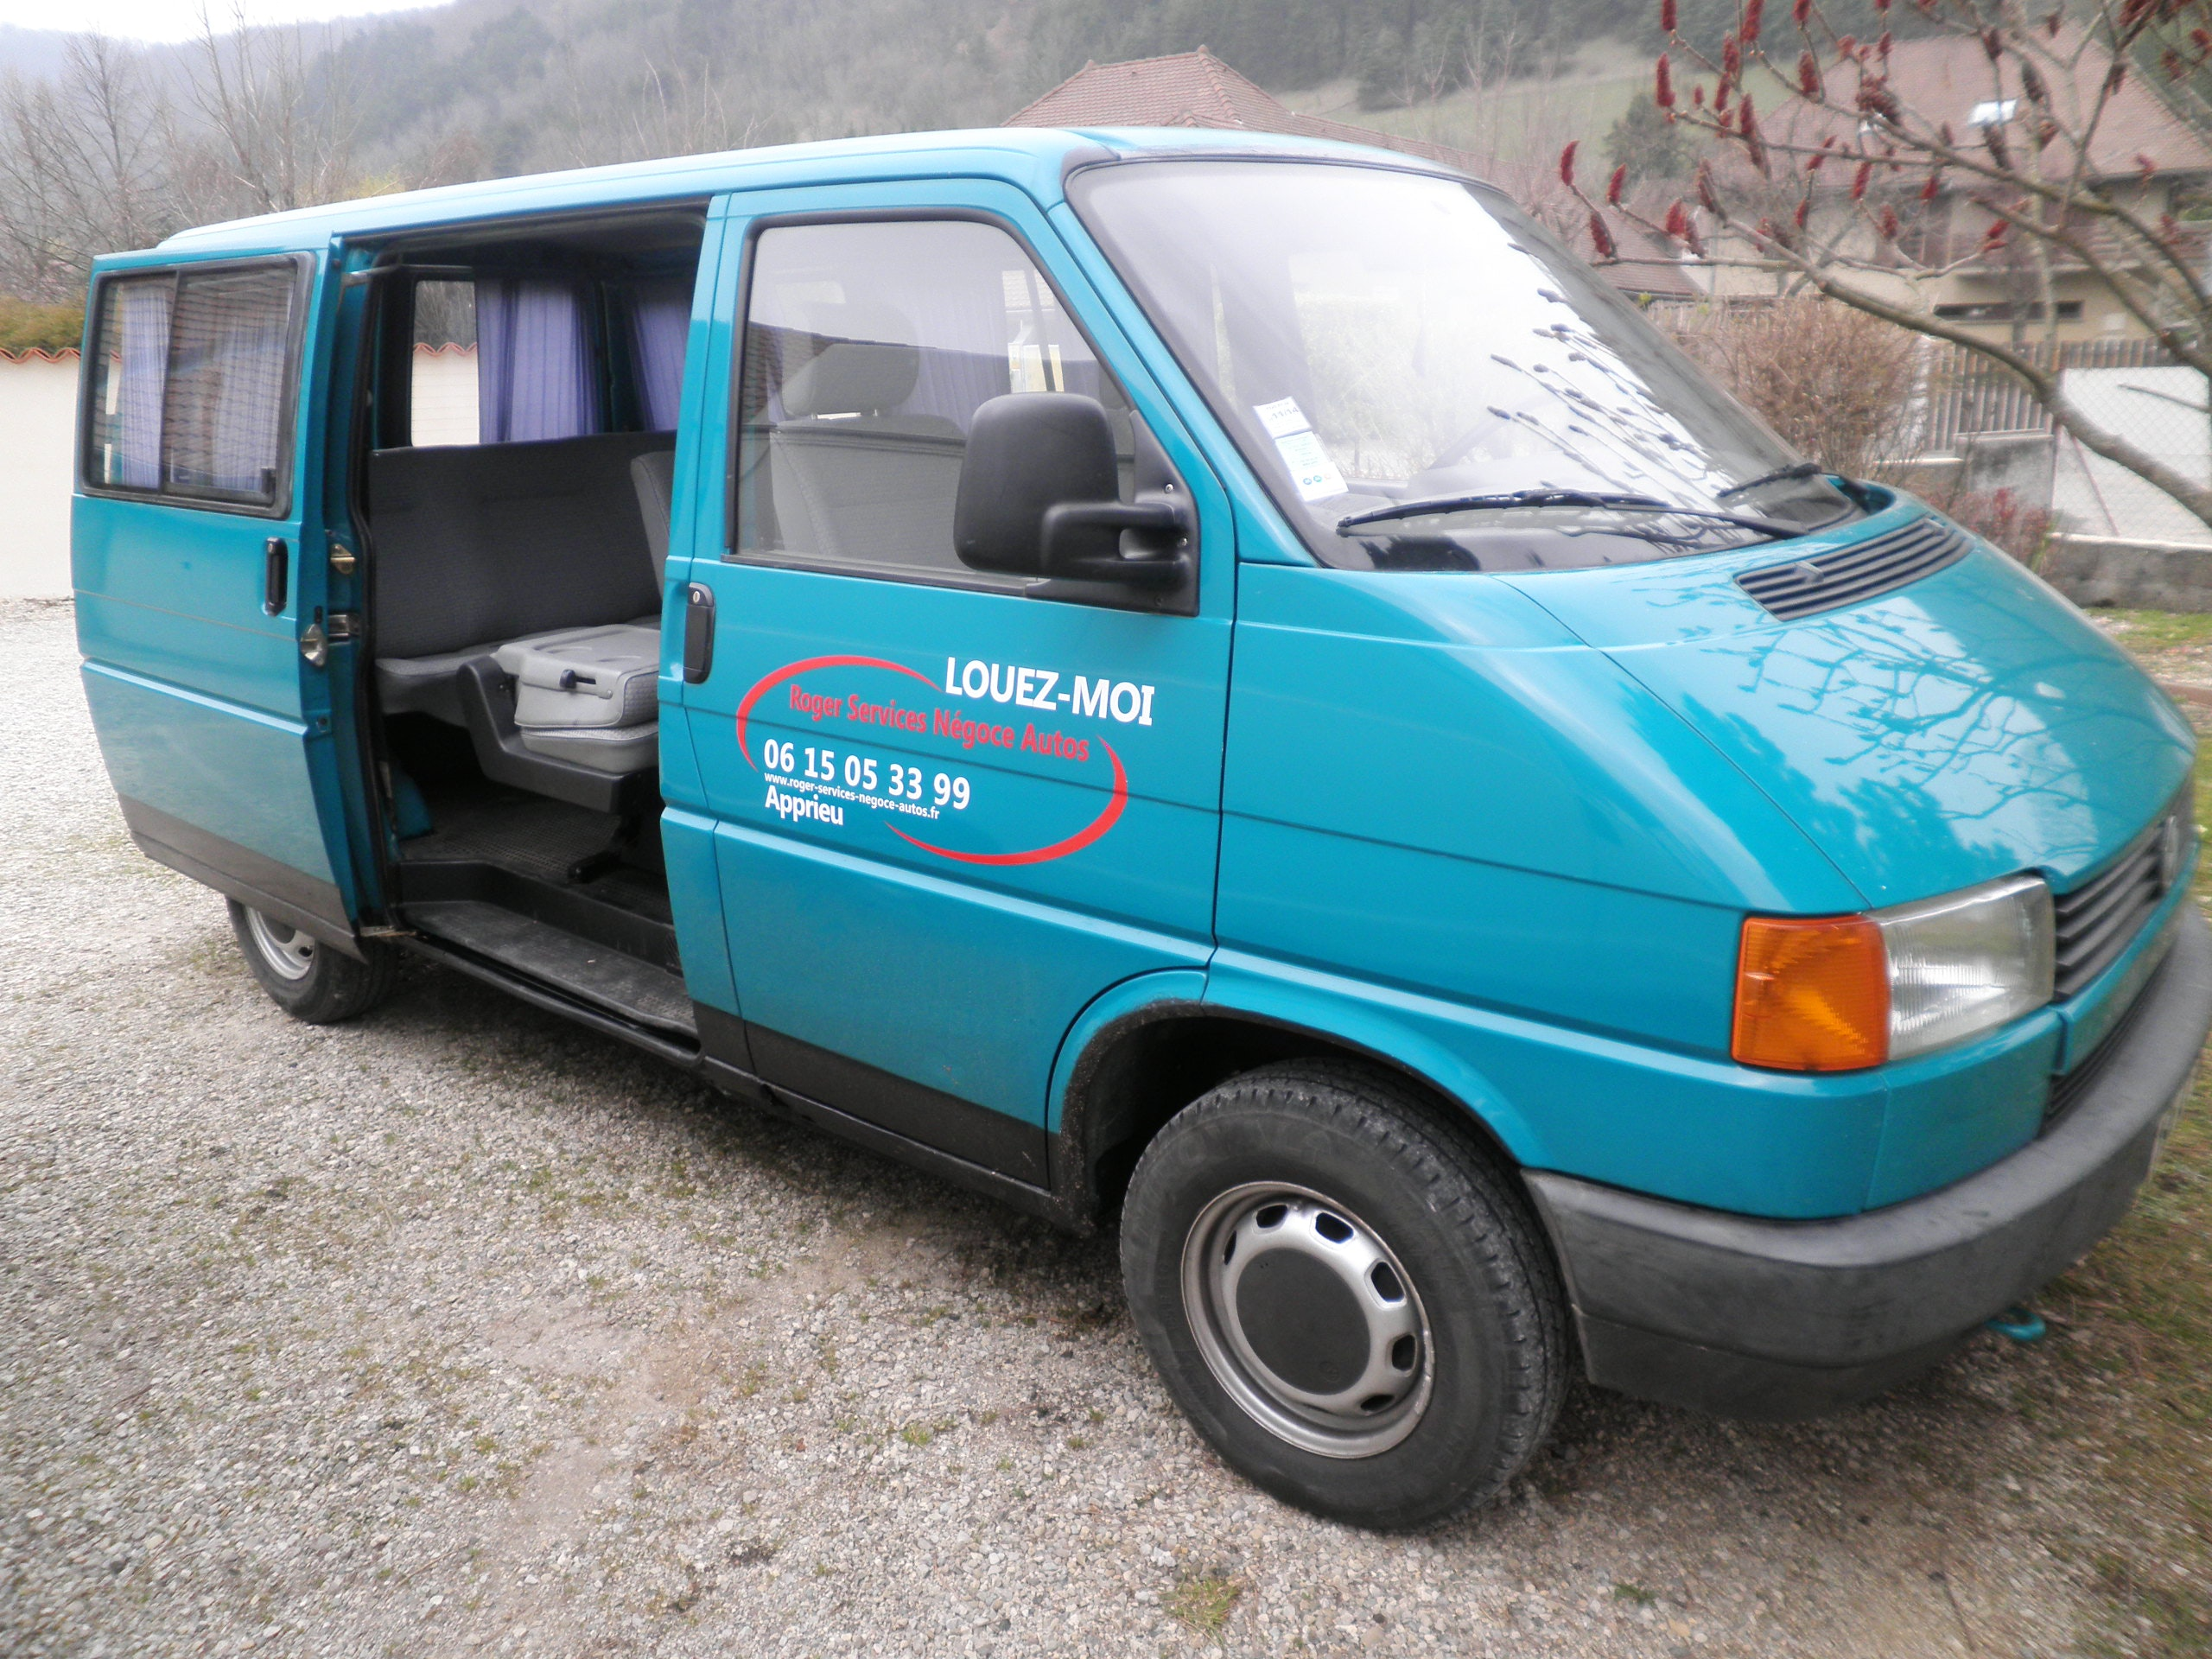 Volkswagen transporteur t 4 diésel 8 places, 1992, Diesel, 8 places